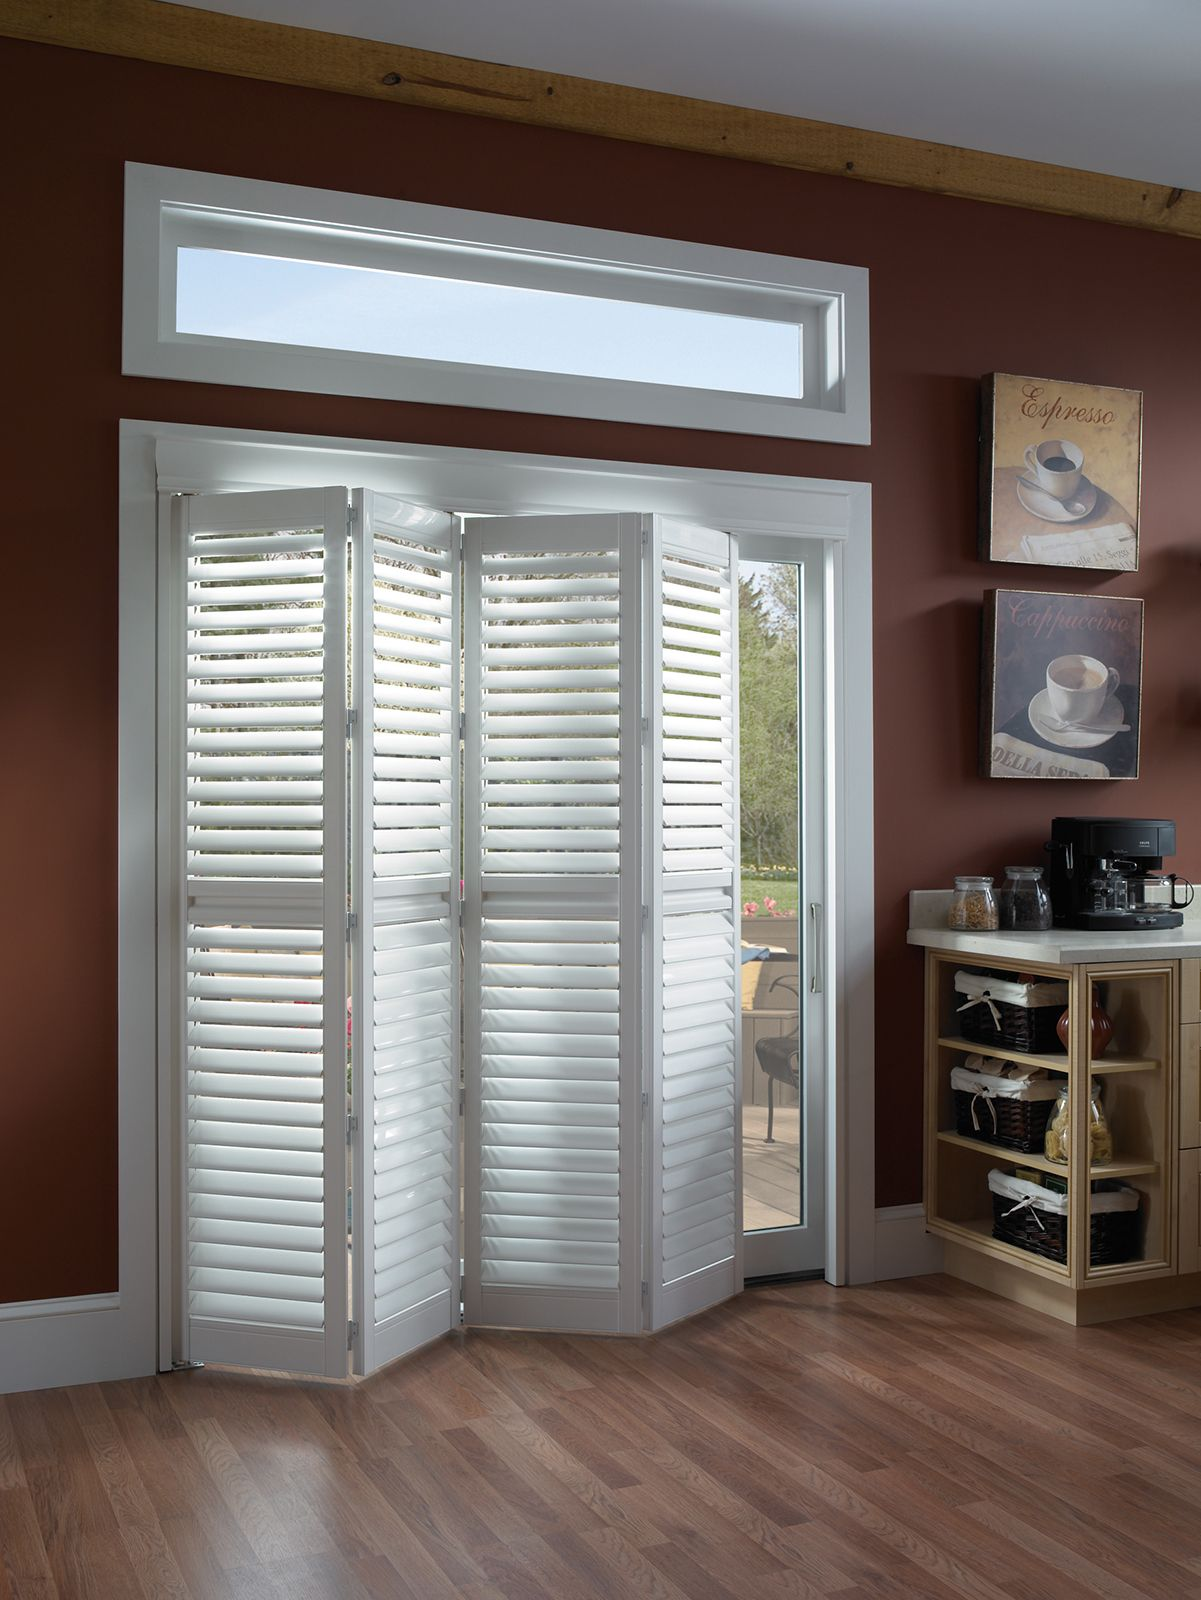 Cotton • Two panel Bi-Fold doors • 2½ inch louver • Deluxe Divider Rail • Decorative Valance • UltraClearview® hidden rear tilt